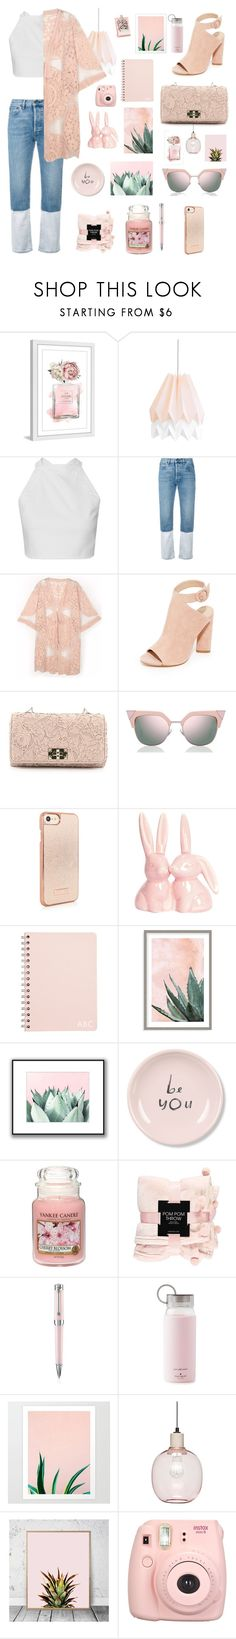 """Be you."" by totalteenagenobody ❤ liked on Polyvore featuring Marmont Hill, Ports 1961, Kendall + Kylie, Valentino, Fendi, Art Addiction, Fringe, Yankee Candle, Forever 21 and Montegrappa"